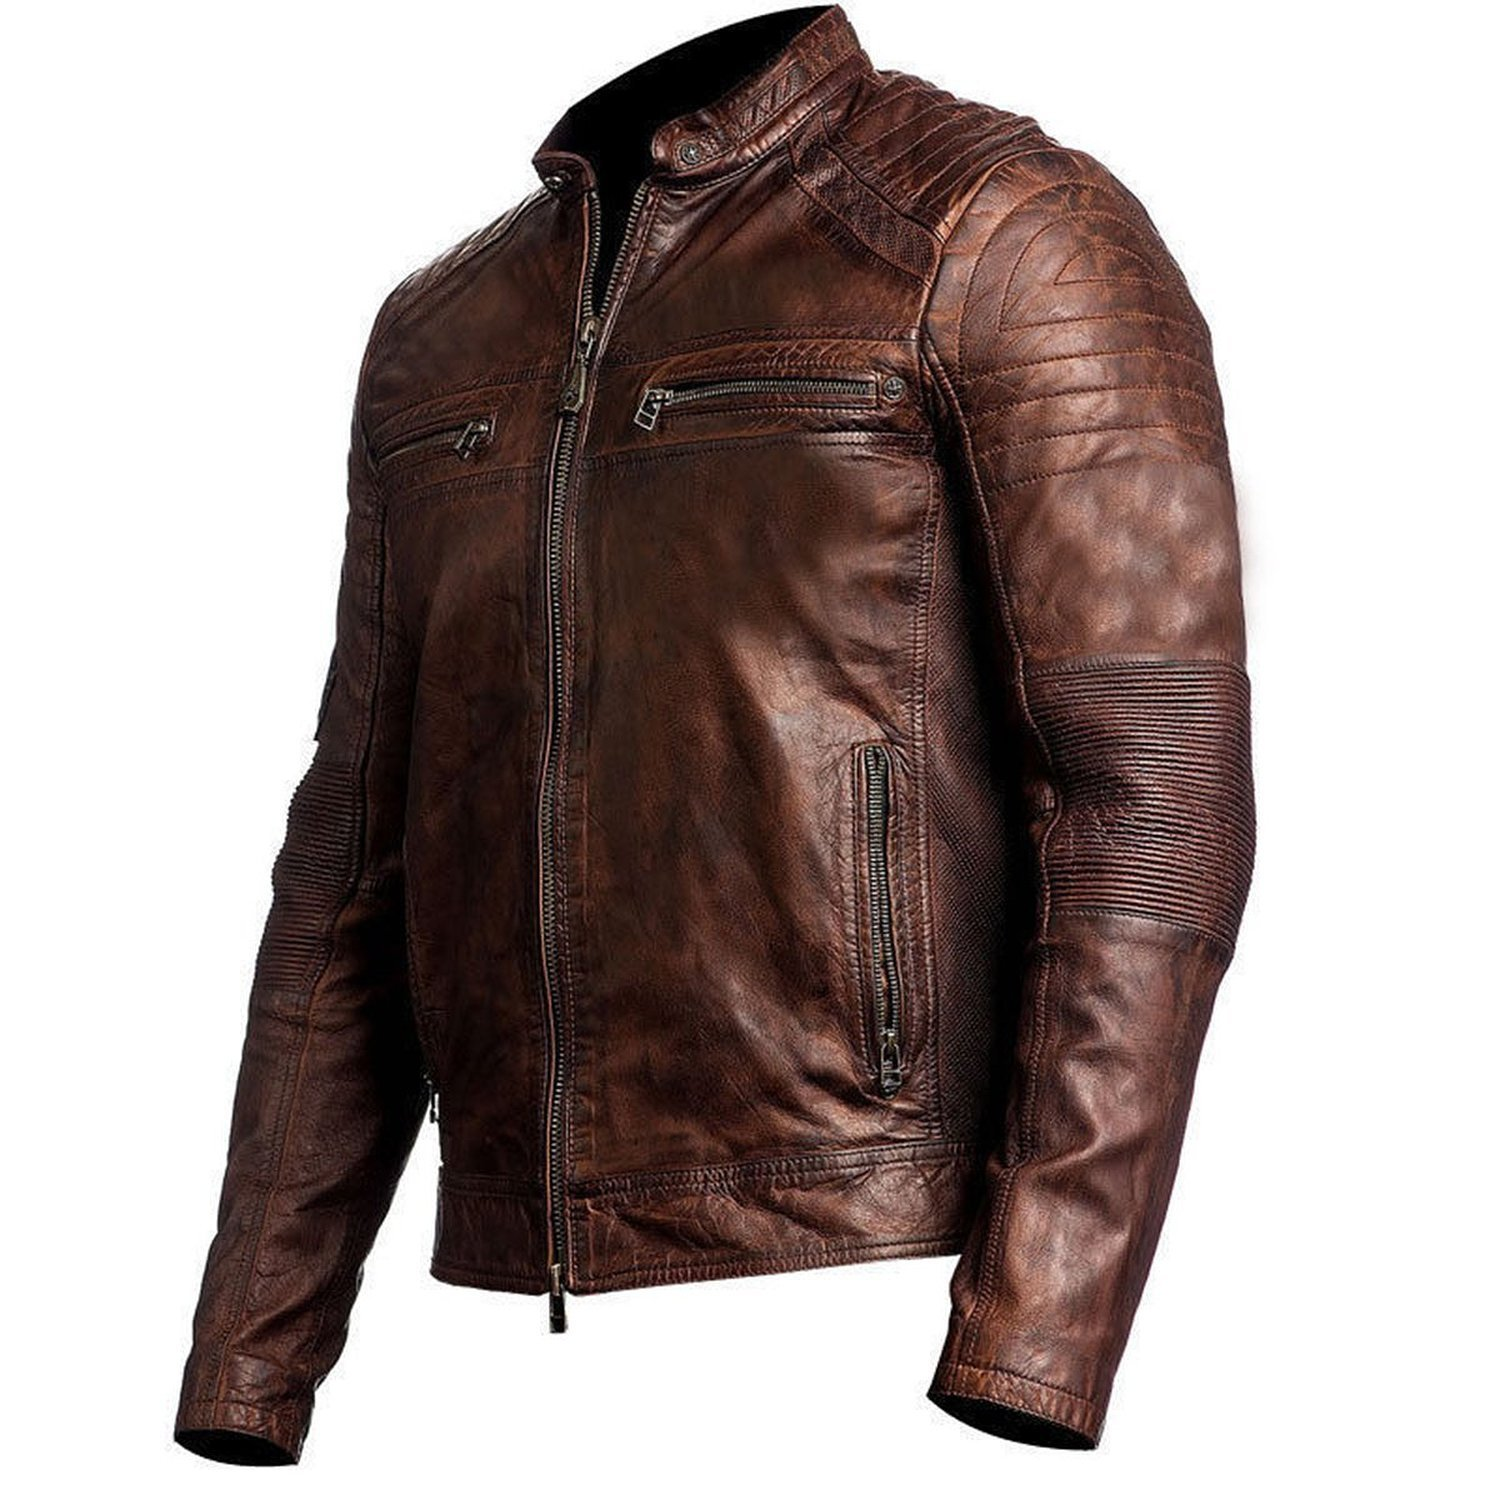 MPASSIONS Mens Vintage Motorcycle Cafe Racer Brown Distressed Leather Jacket at Amazon Mens Clothing store: